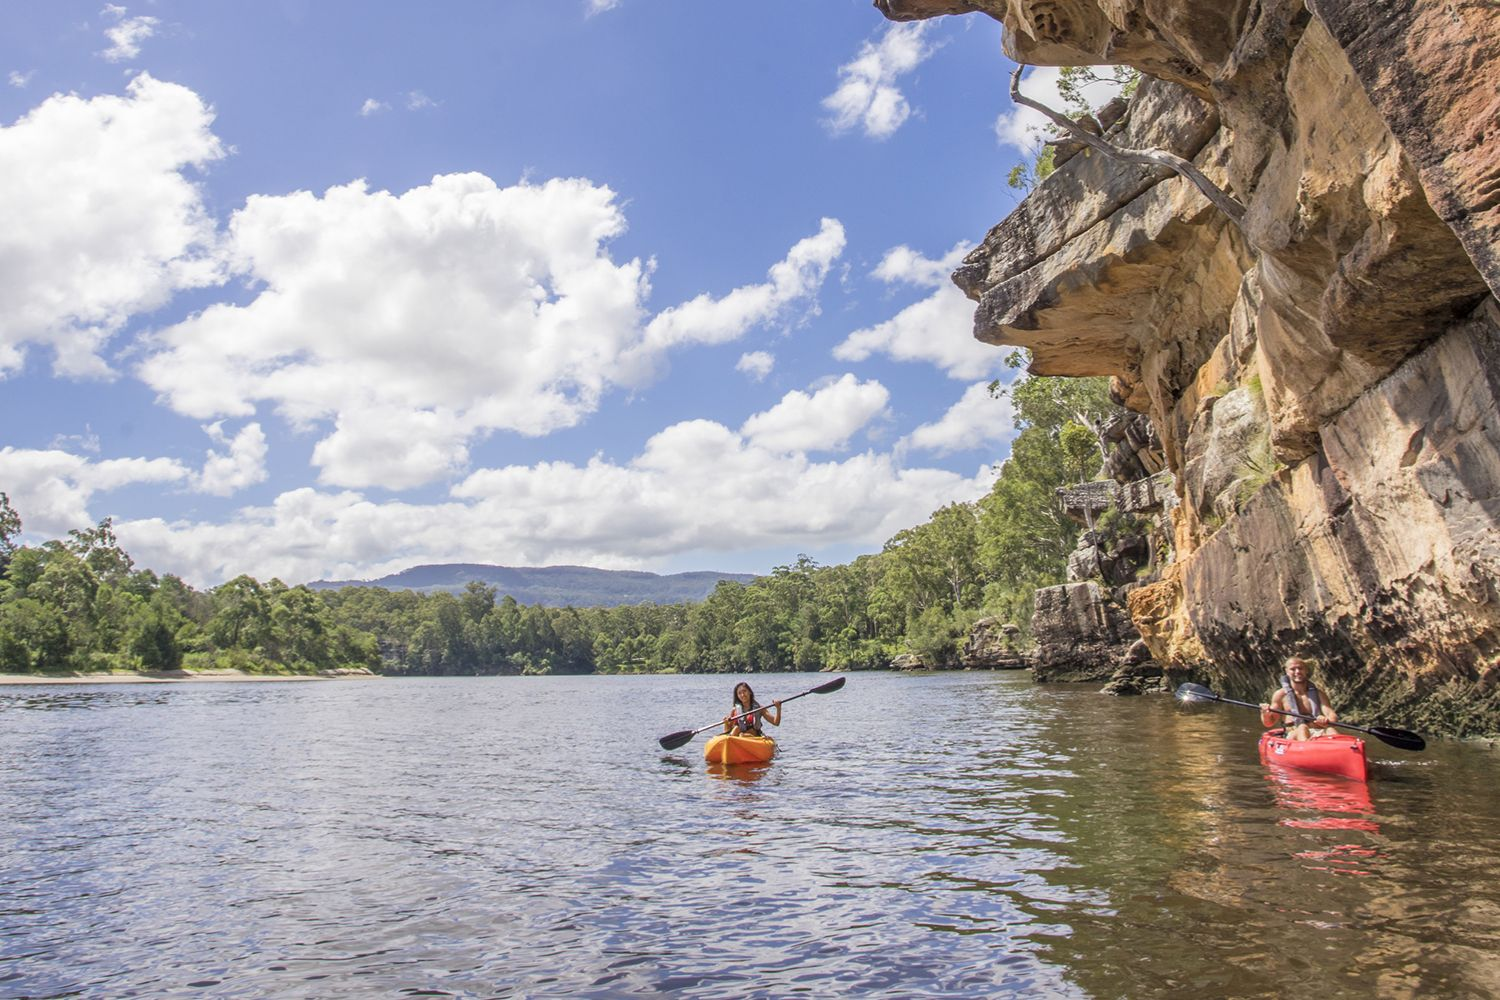 Couple enjoying a day of kayaking on the Shoalhaven River near Nowra